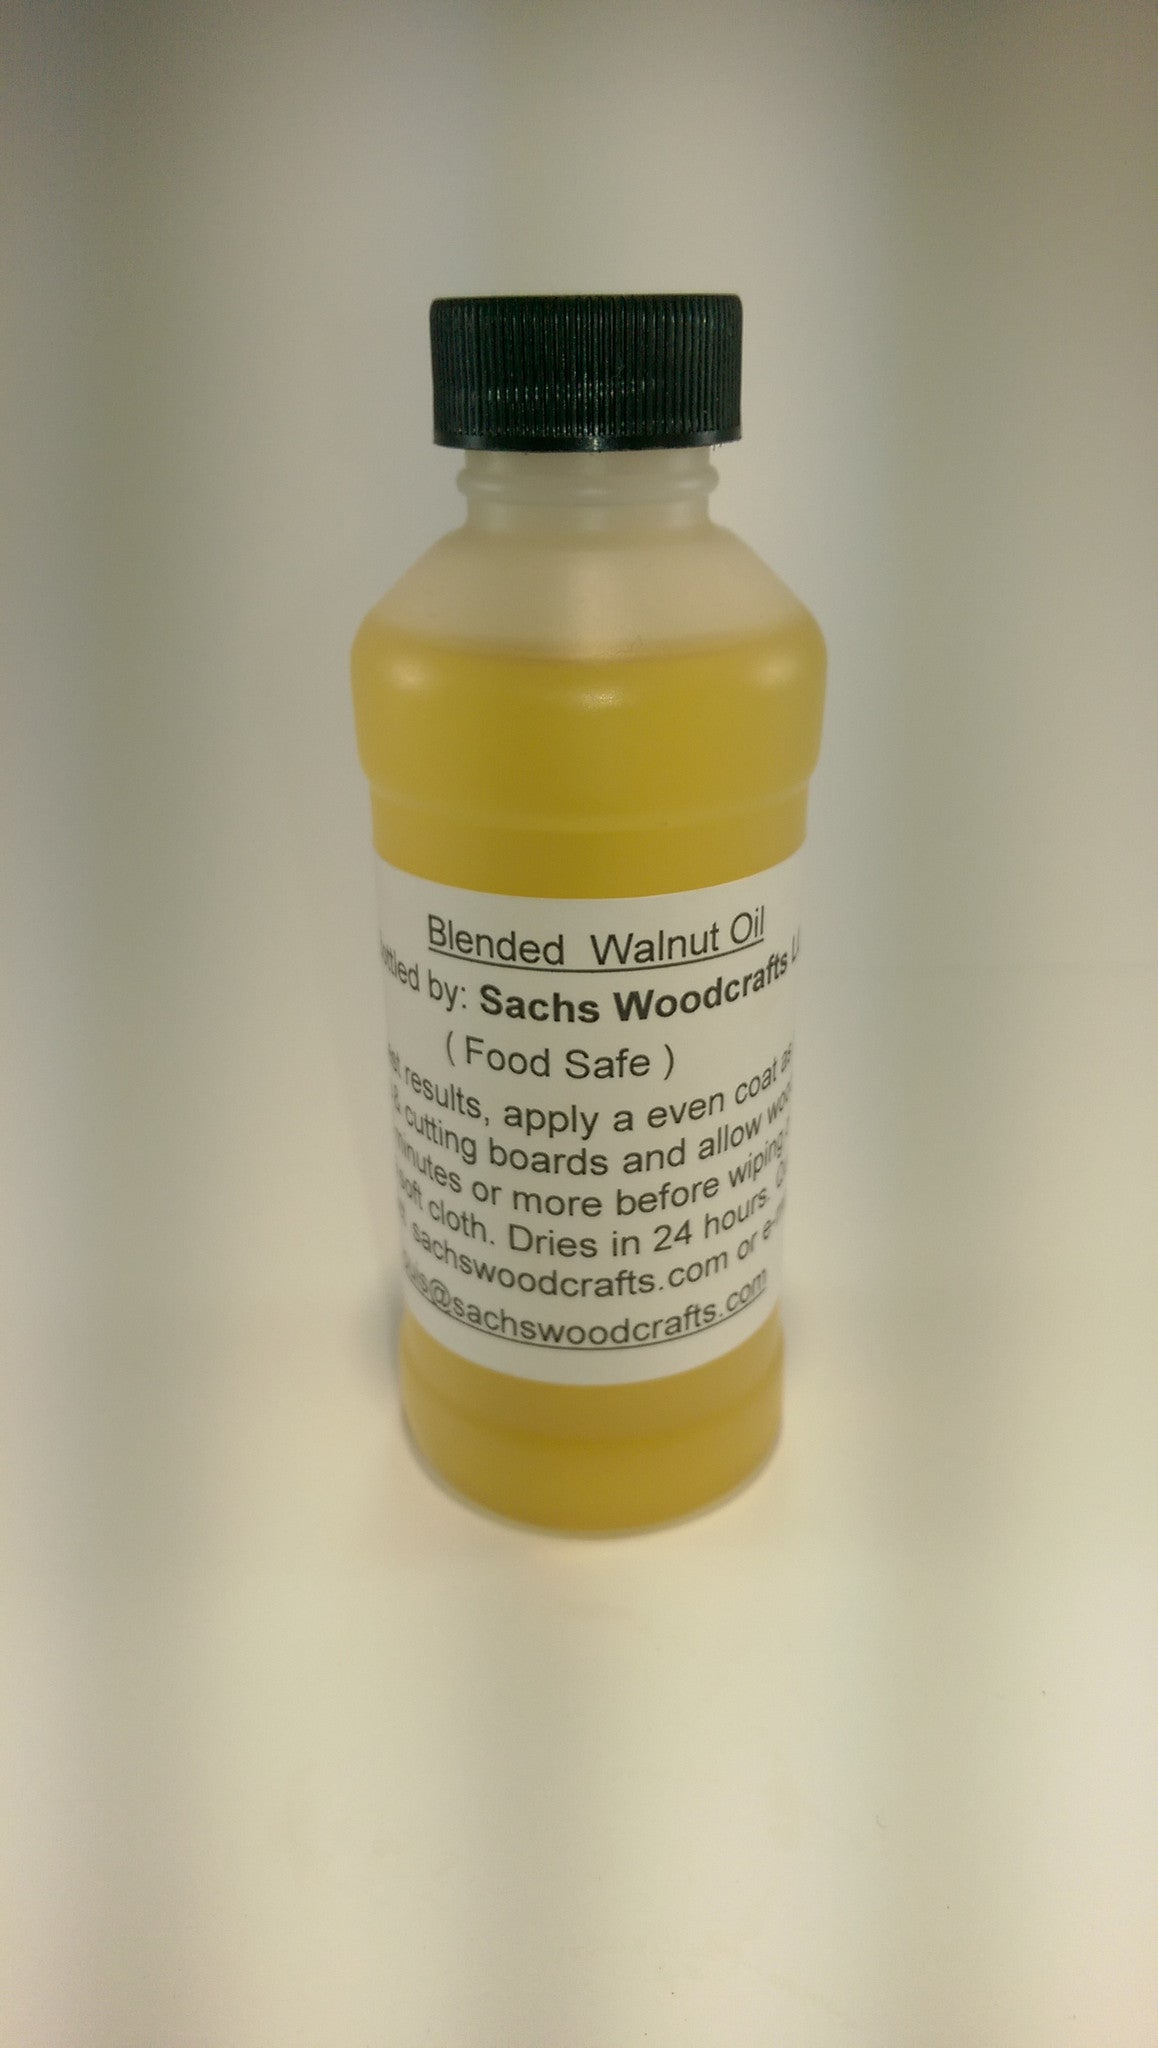 linseed / walnut oil